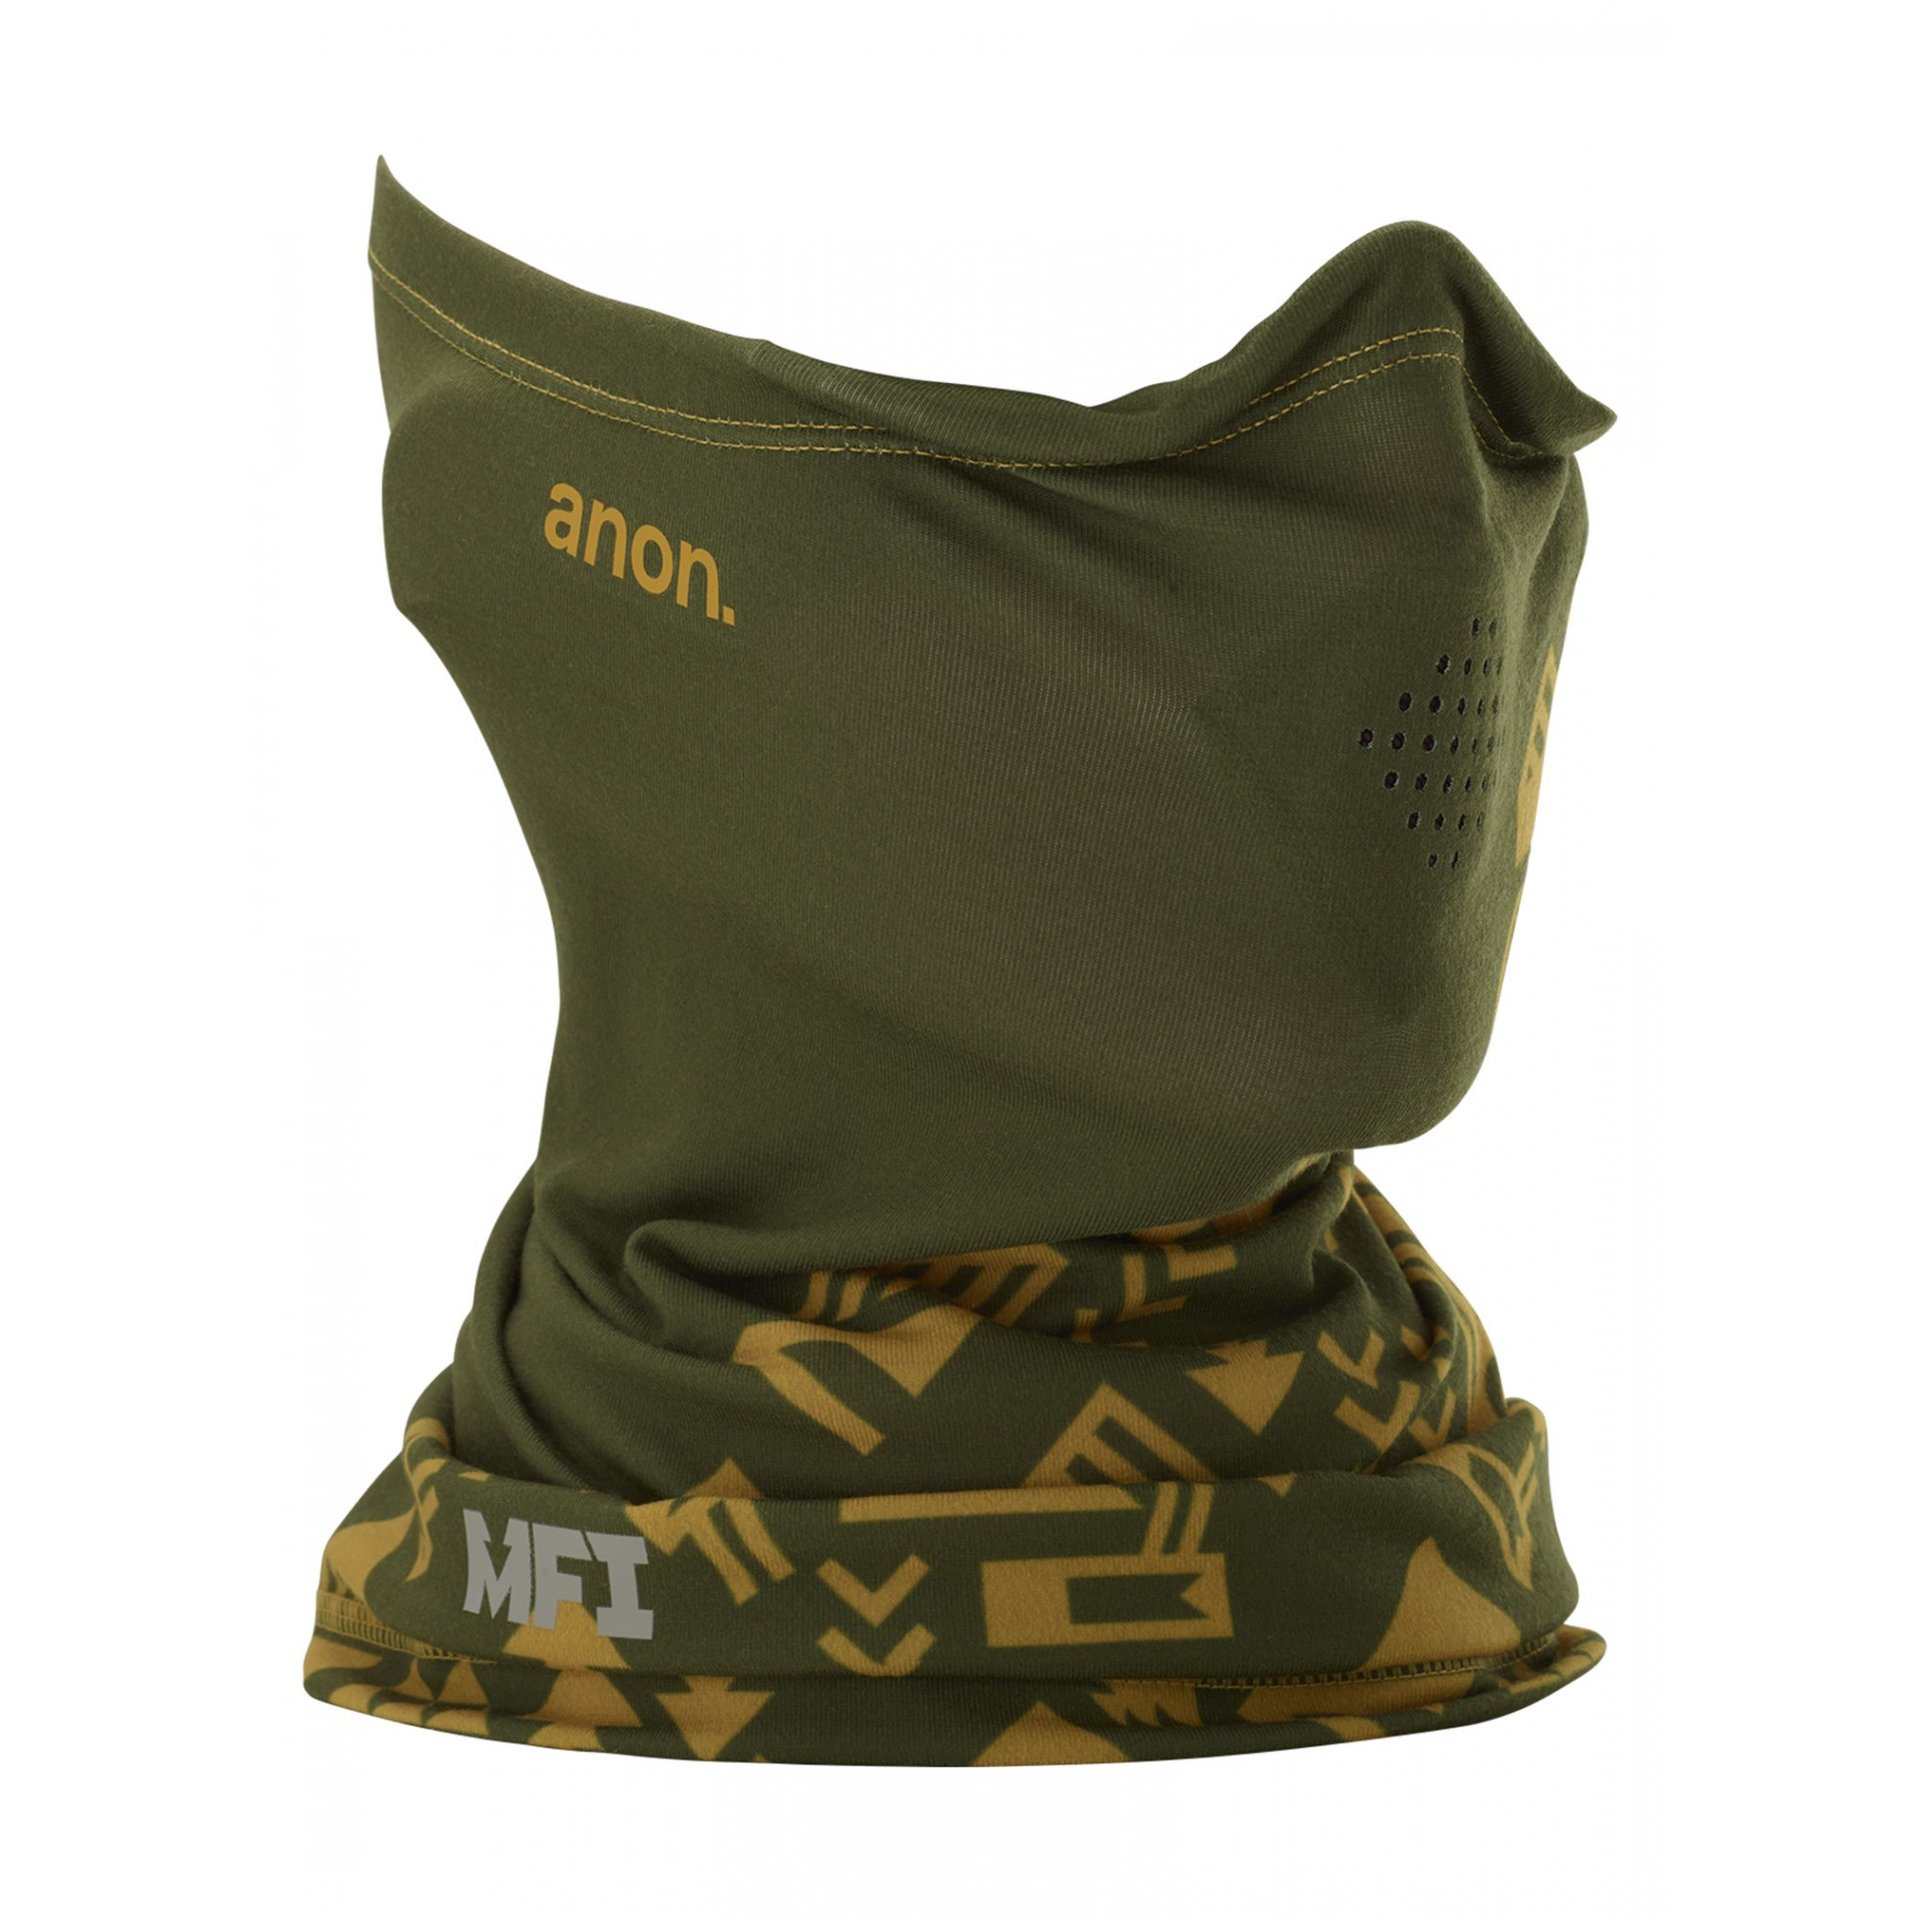 KOMIN ANON MFI LIGHTWEIGHT NECK WARMER 172461 NATIVE GREEN